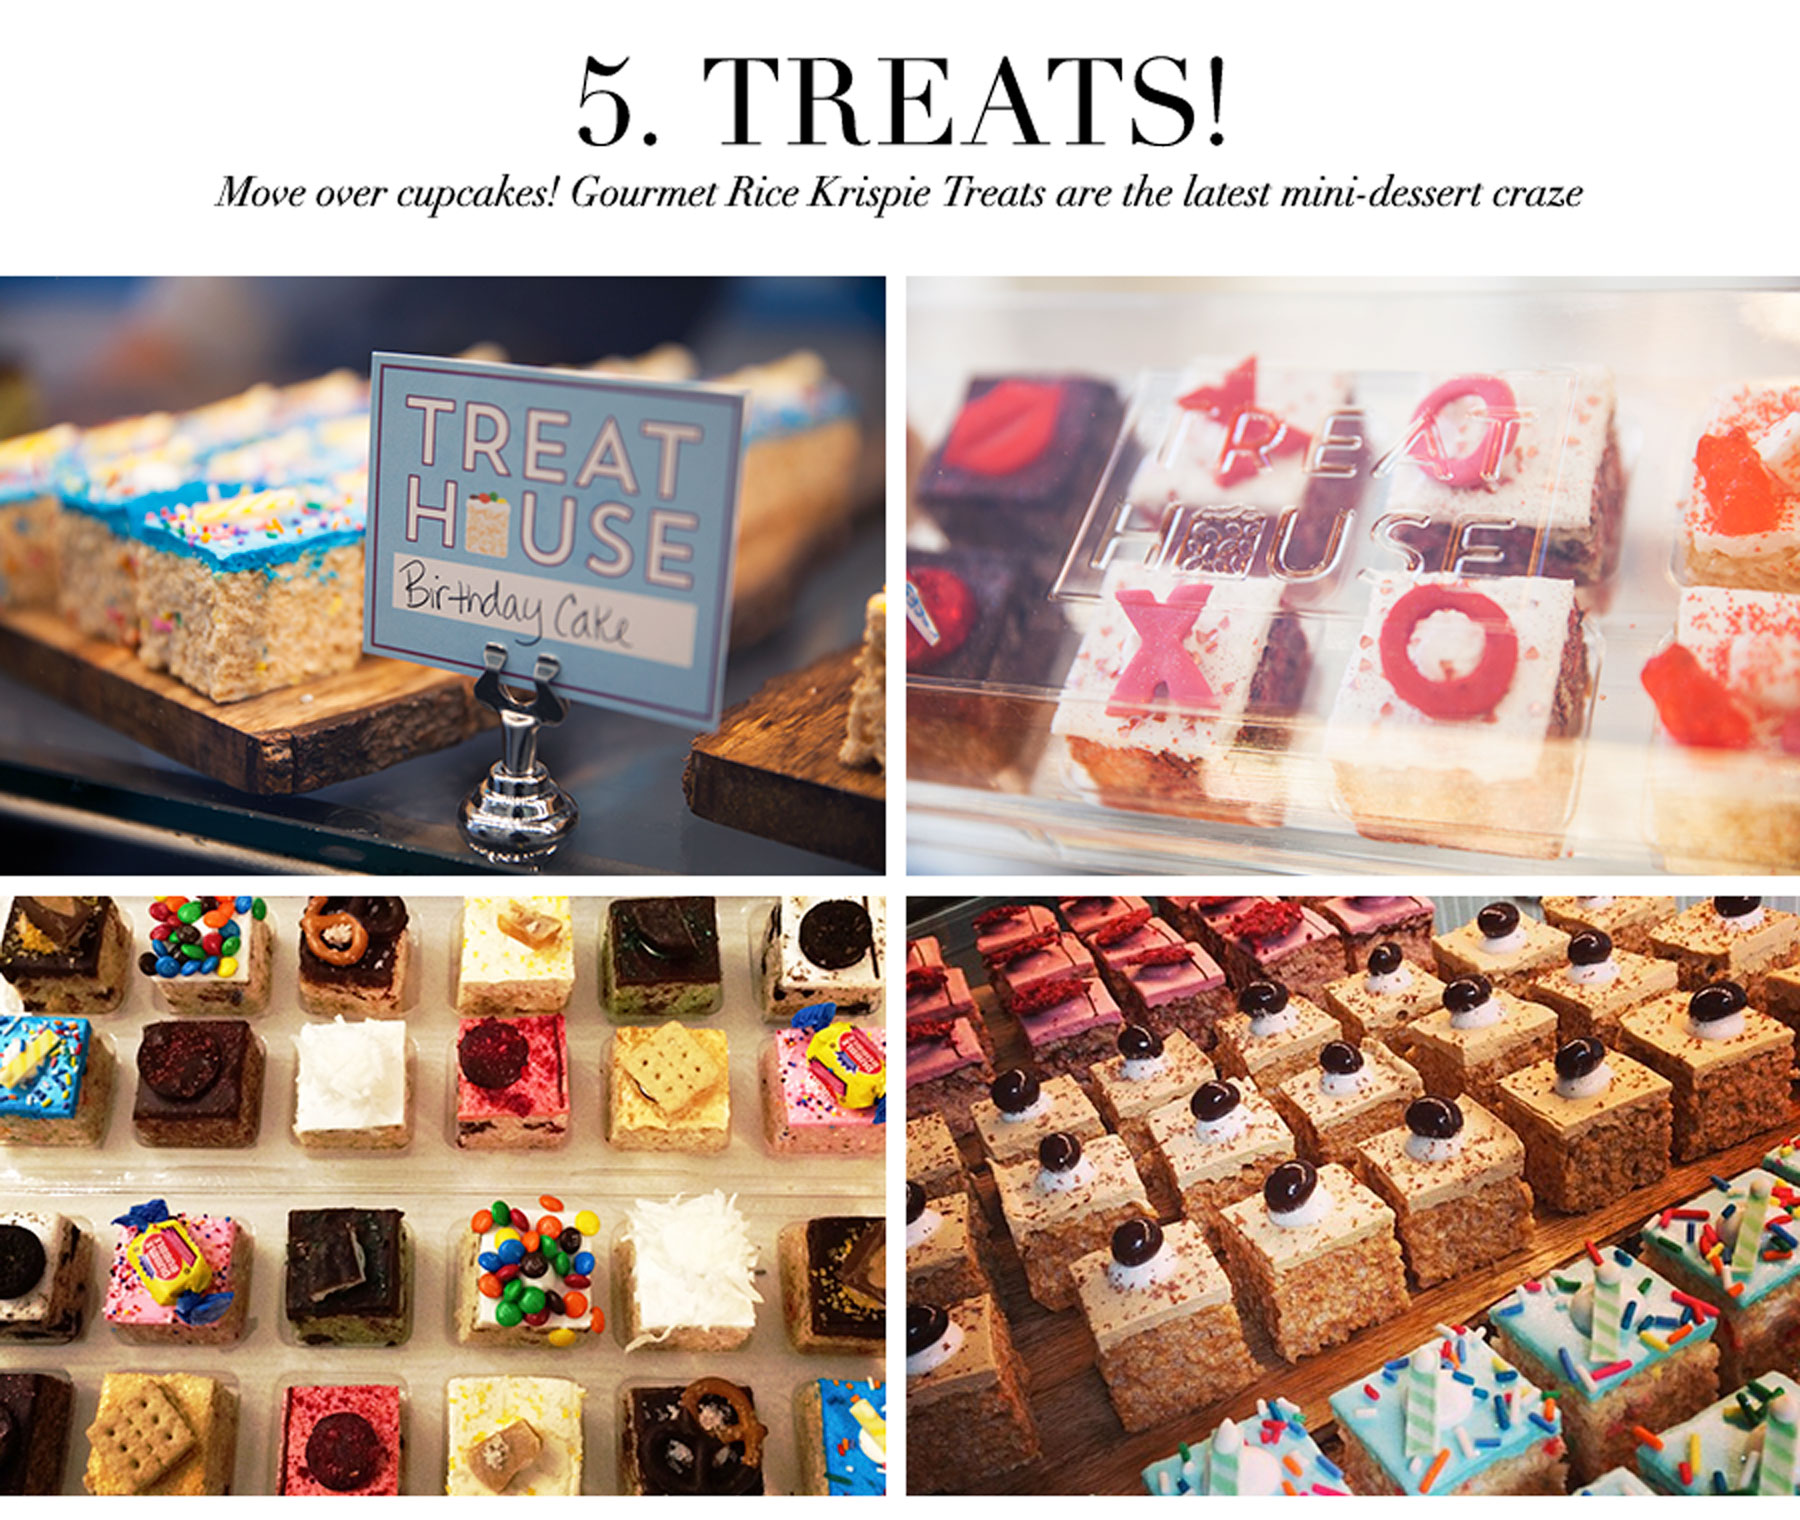 Ceci Johnson's Pamper-Yourself Picks - Treats - Move over cupcakes! Gourmet Rice Krispie Treats are the latest mini-dessert craze